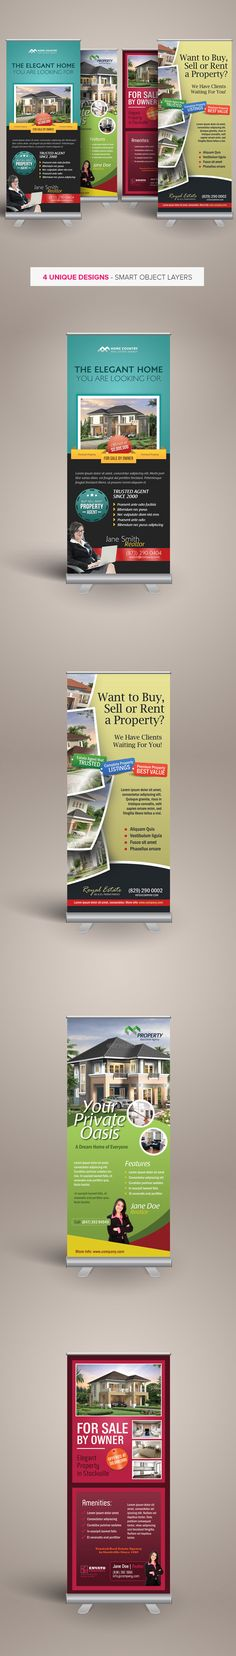 Premium Real Estate Roll-up Banners by Kinzi Wij, via Behance